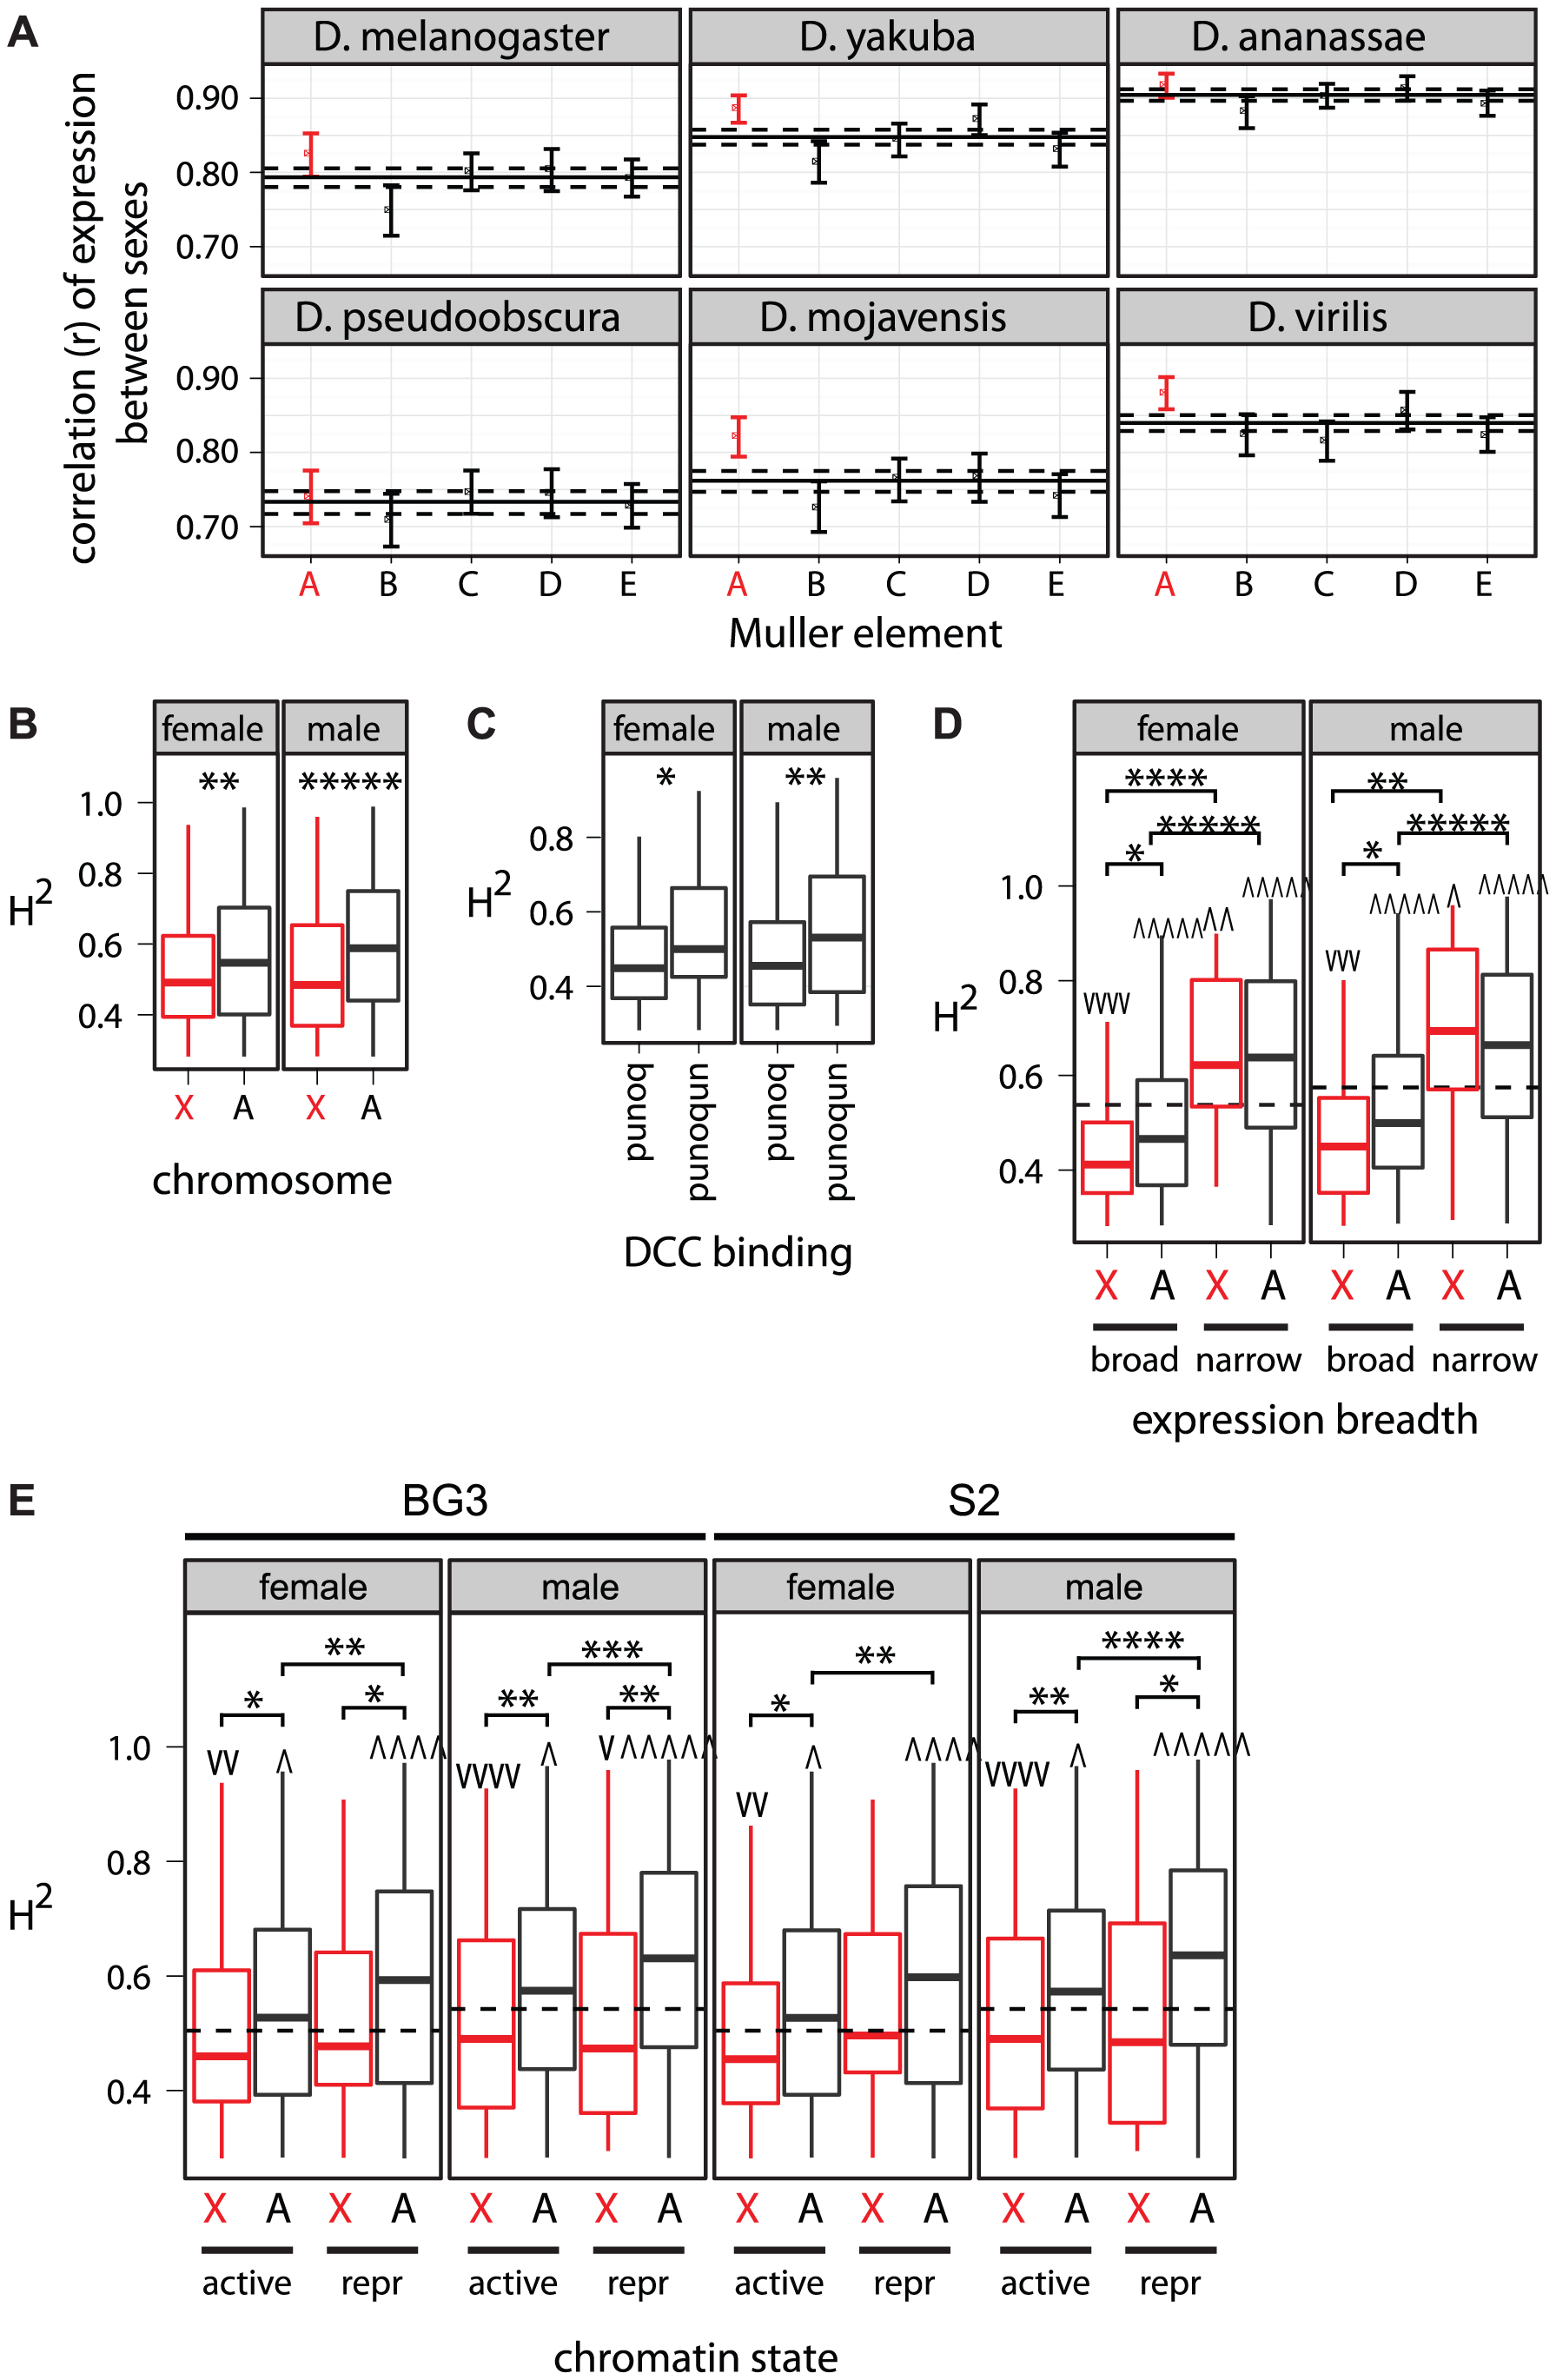 Intraspecific expression variation, X-linkage, DCC binding, expression breadth, and chromatin state.